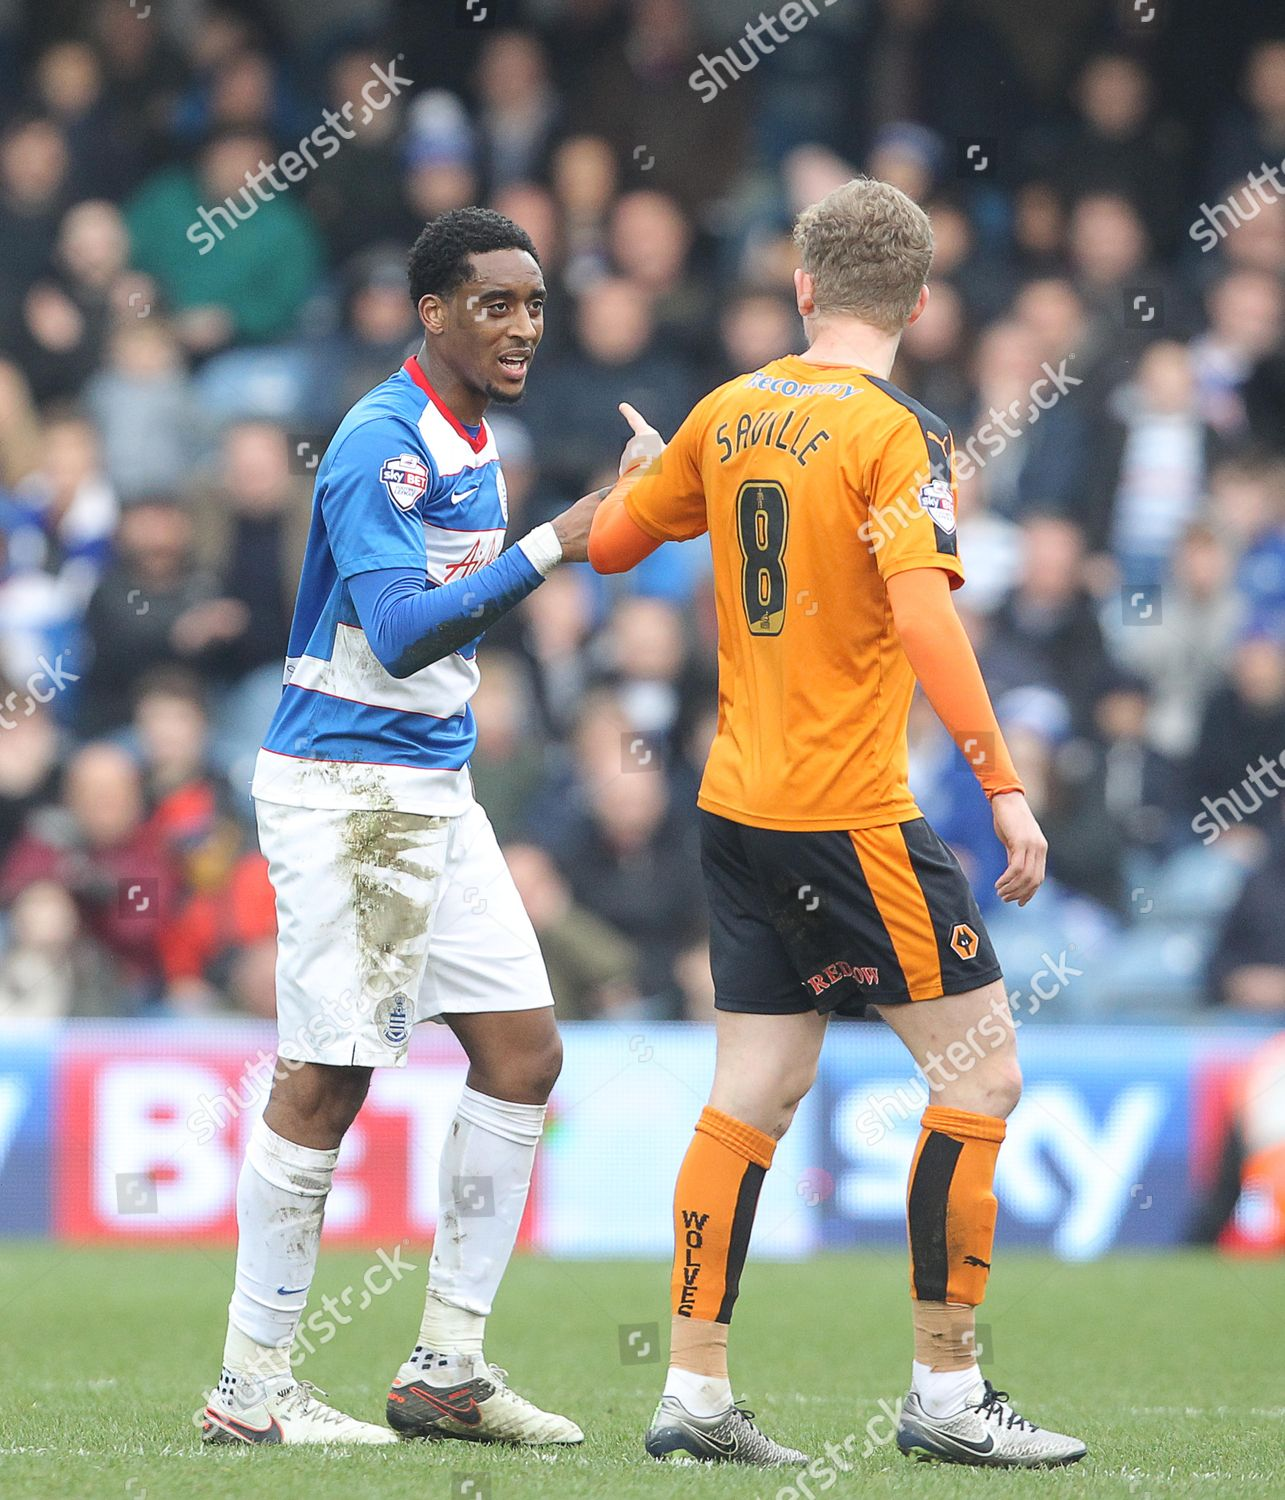 Qpr v wolves betting online indian movie betting raja dailymotion uk